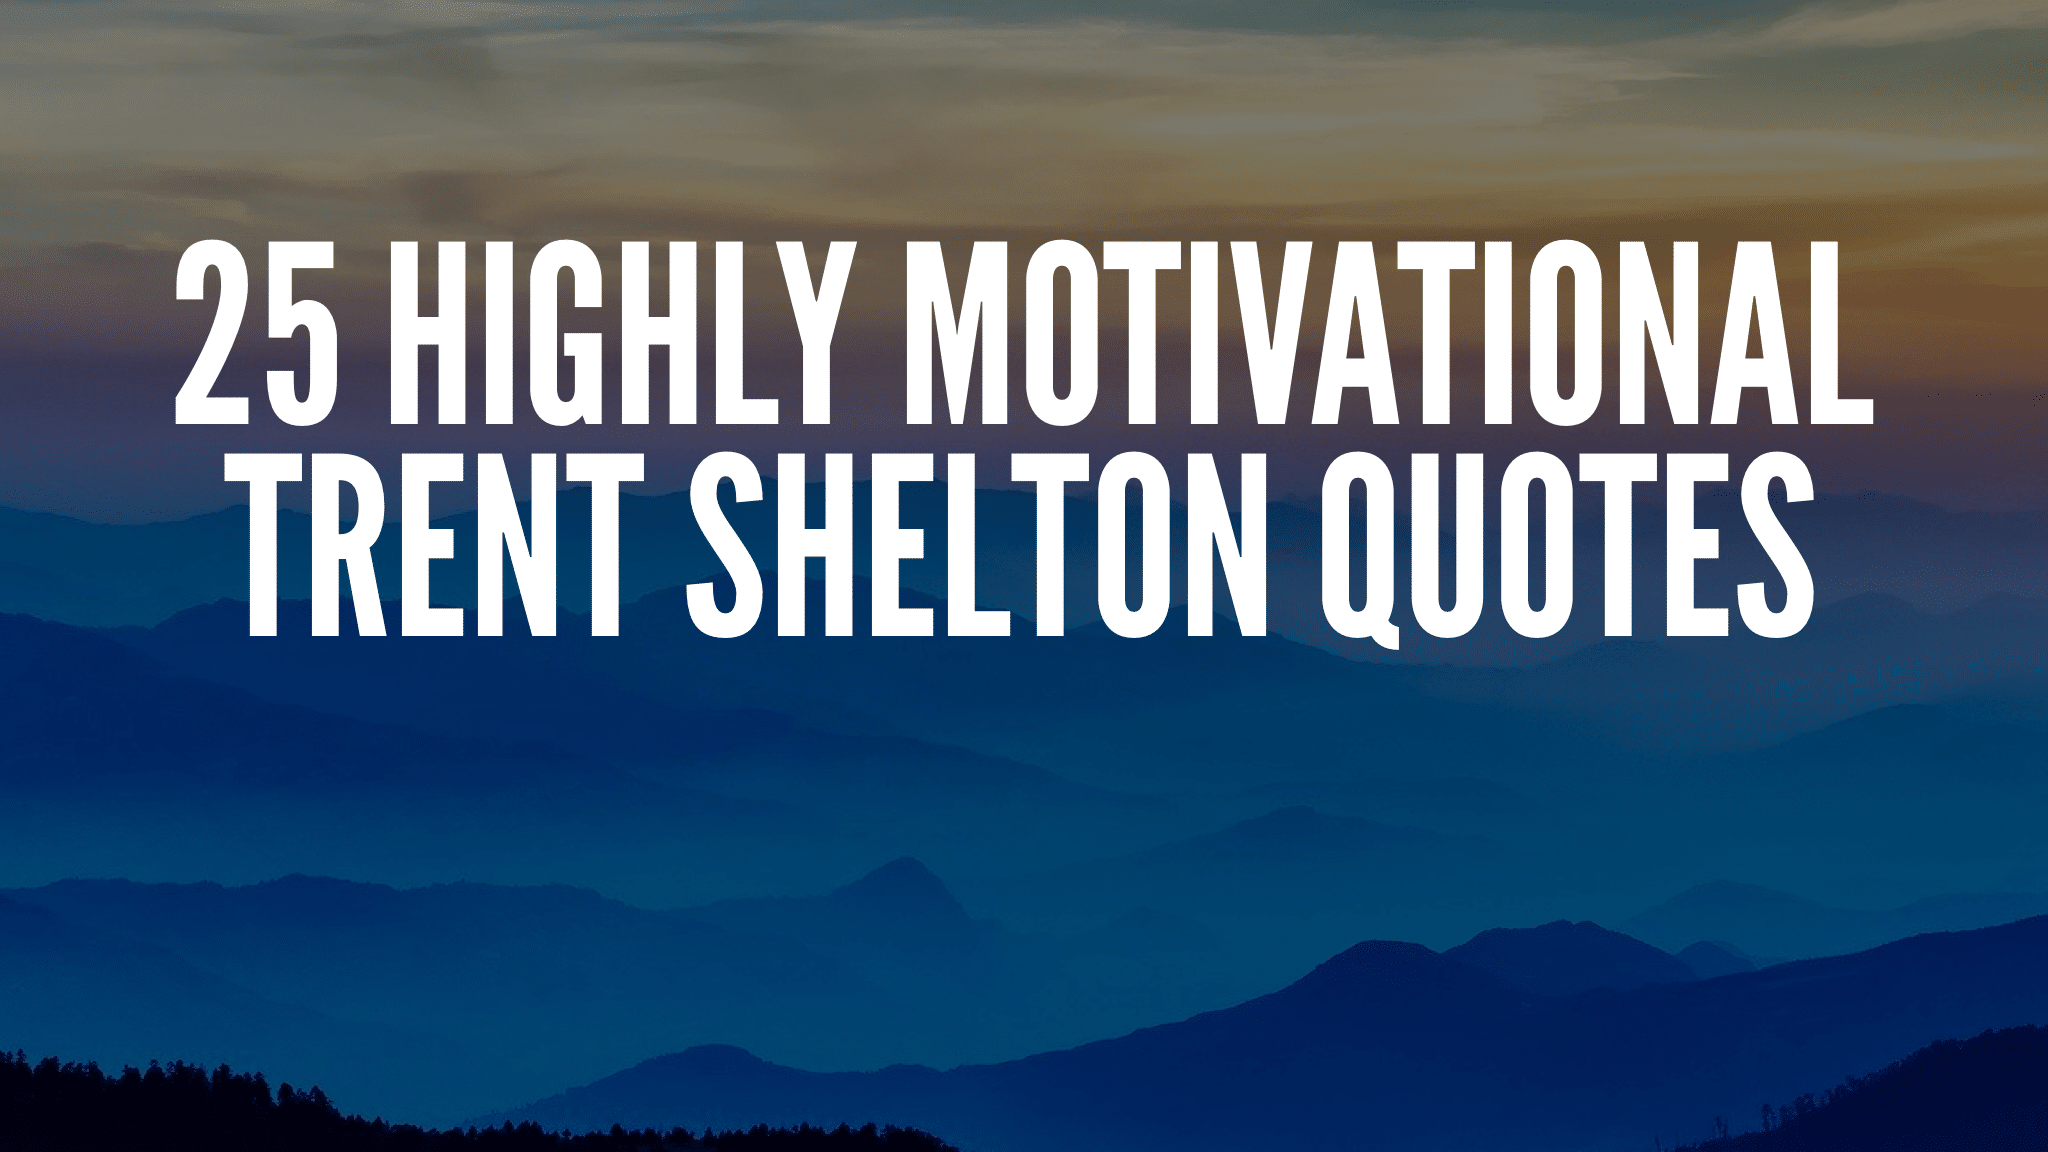 25 Highly Motivational Trent Shelton Quotes